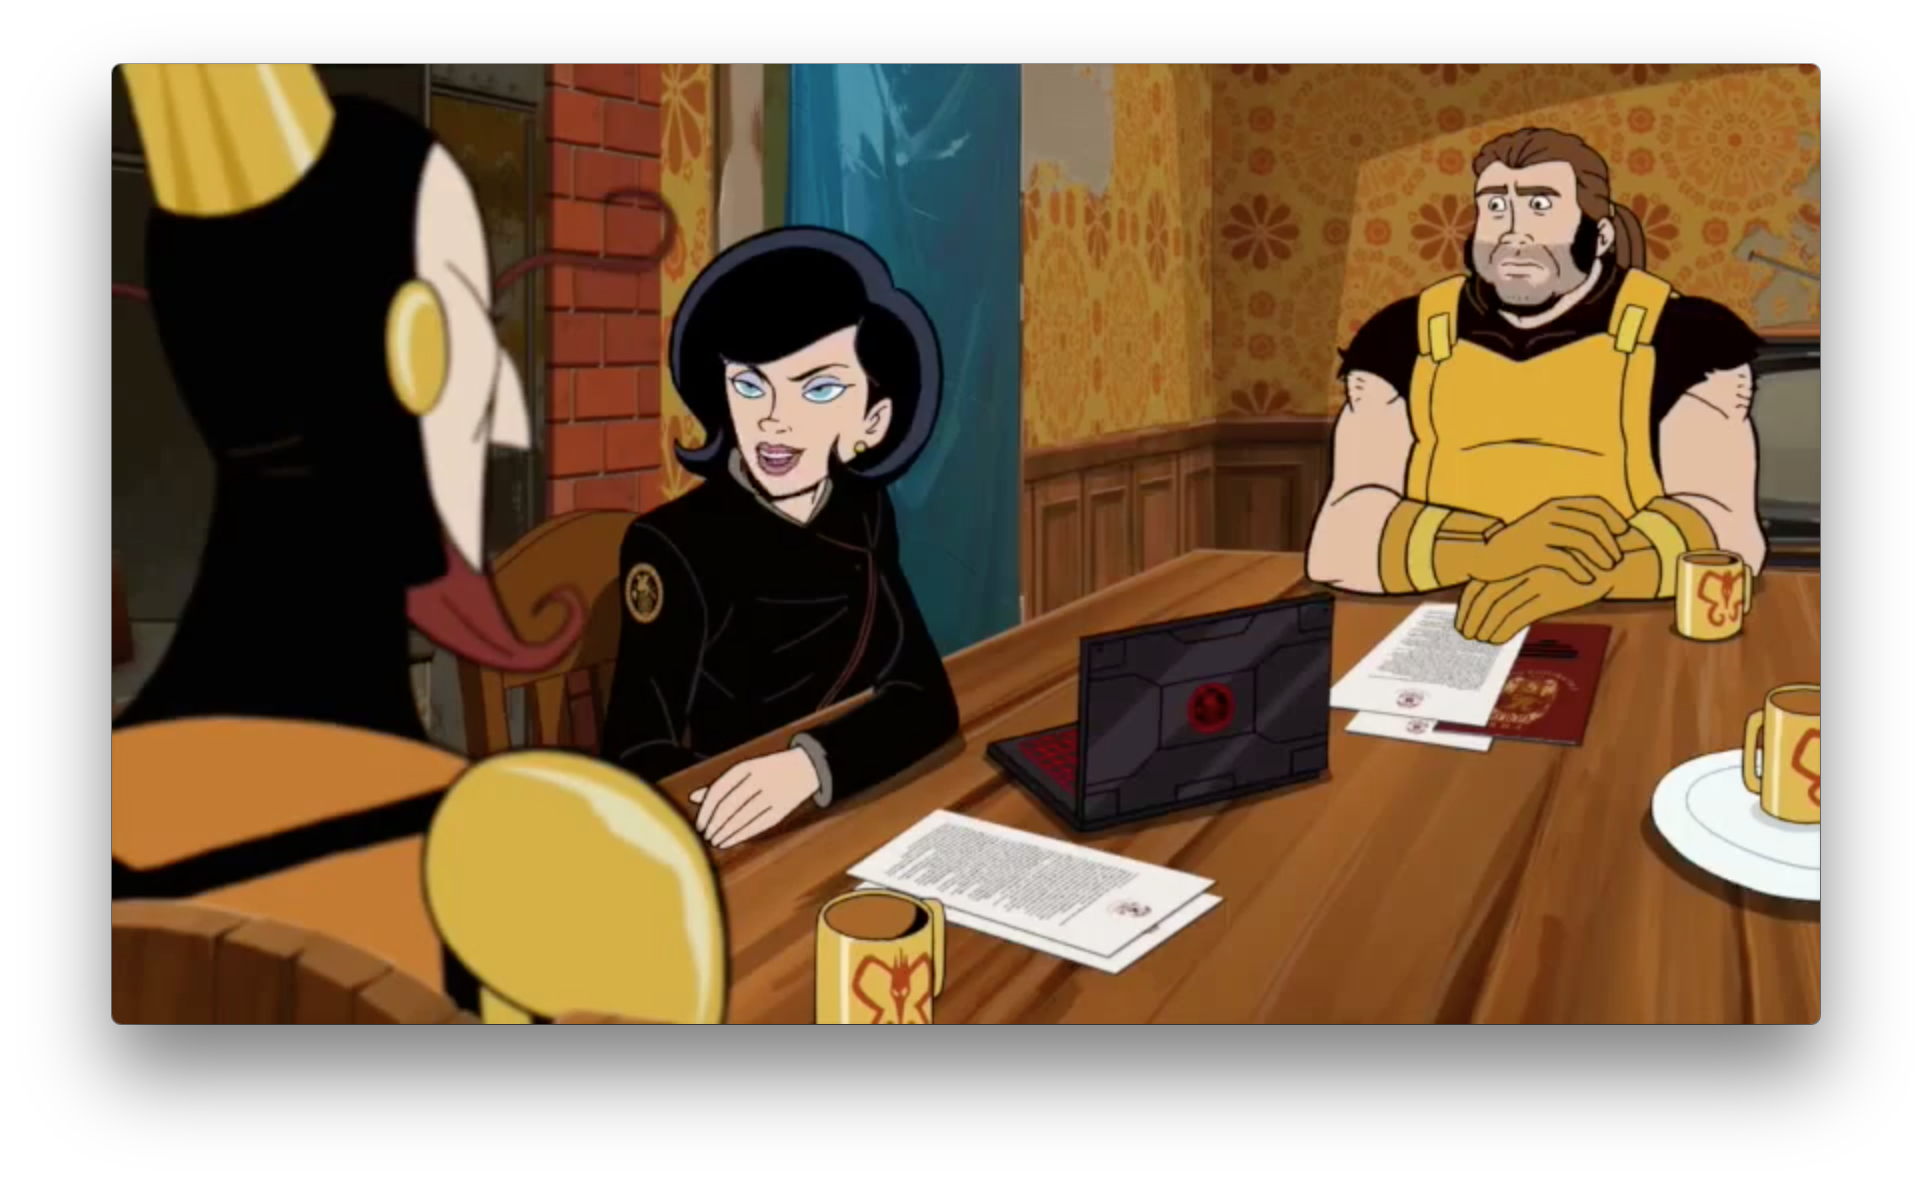 Dr. Mrs. The Monarch tries to bring The Monarch and his crew further into The Guild, and help him work his way up.